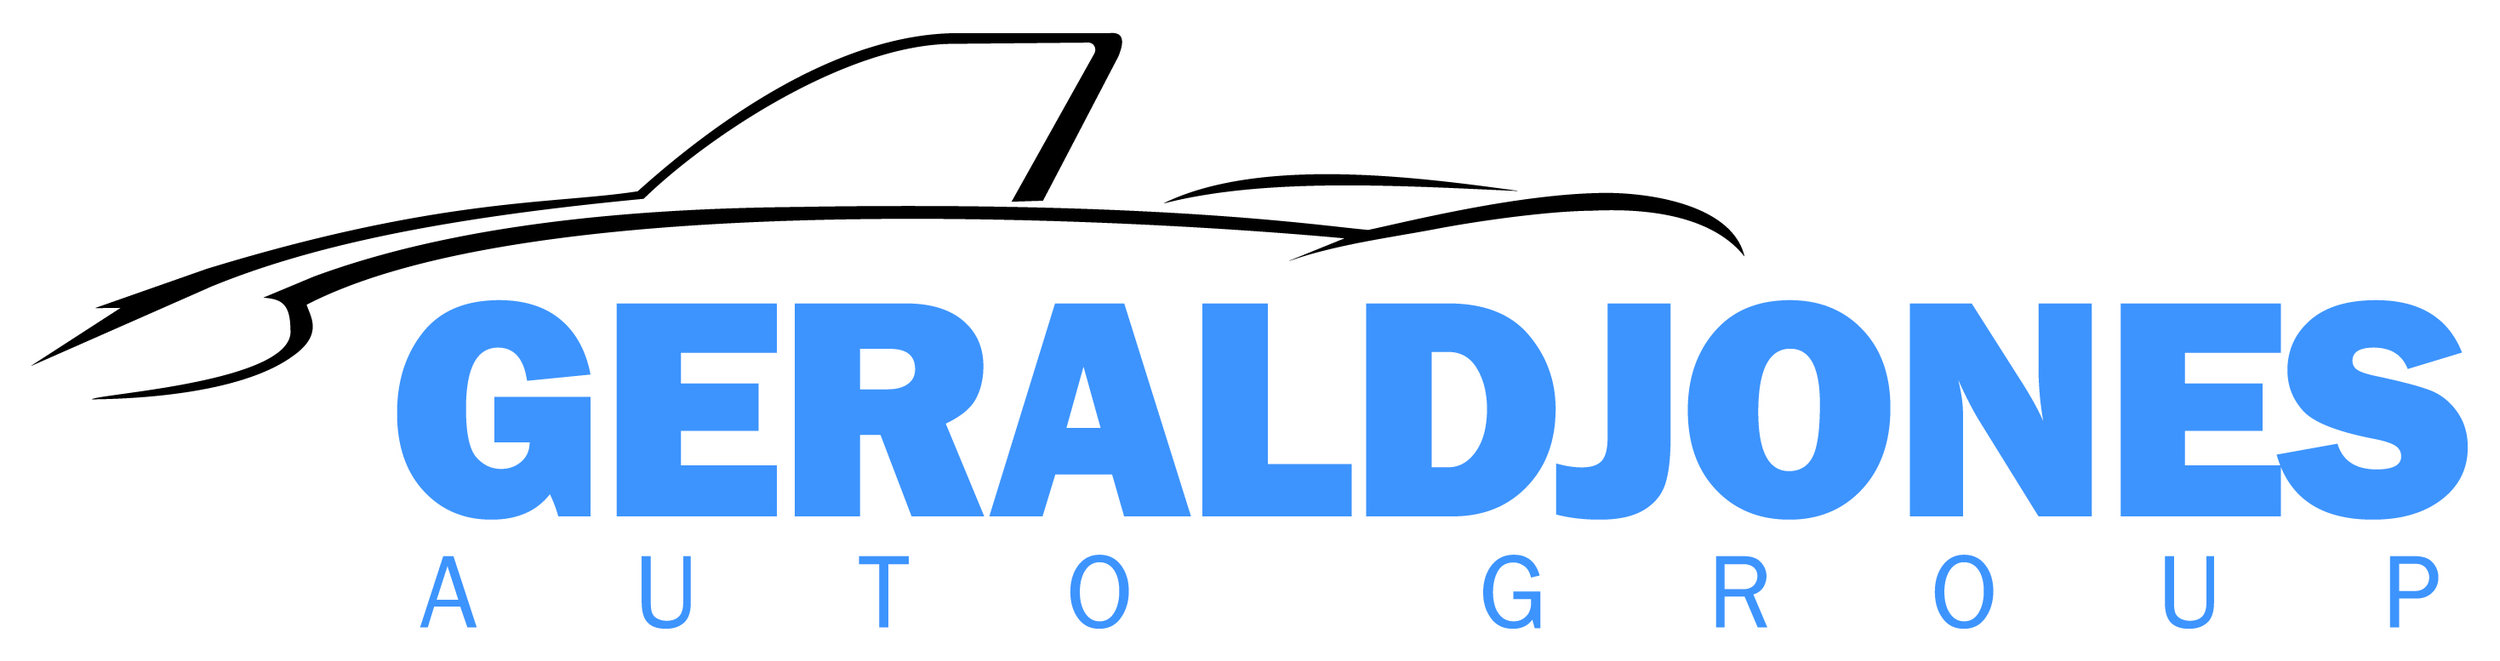 GeraldJonesAutoGroup_Color.jpg